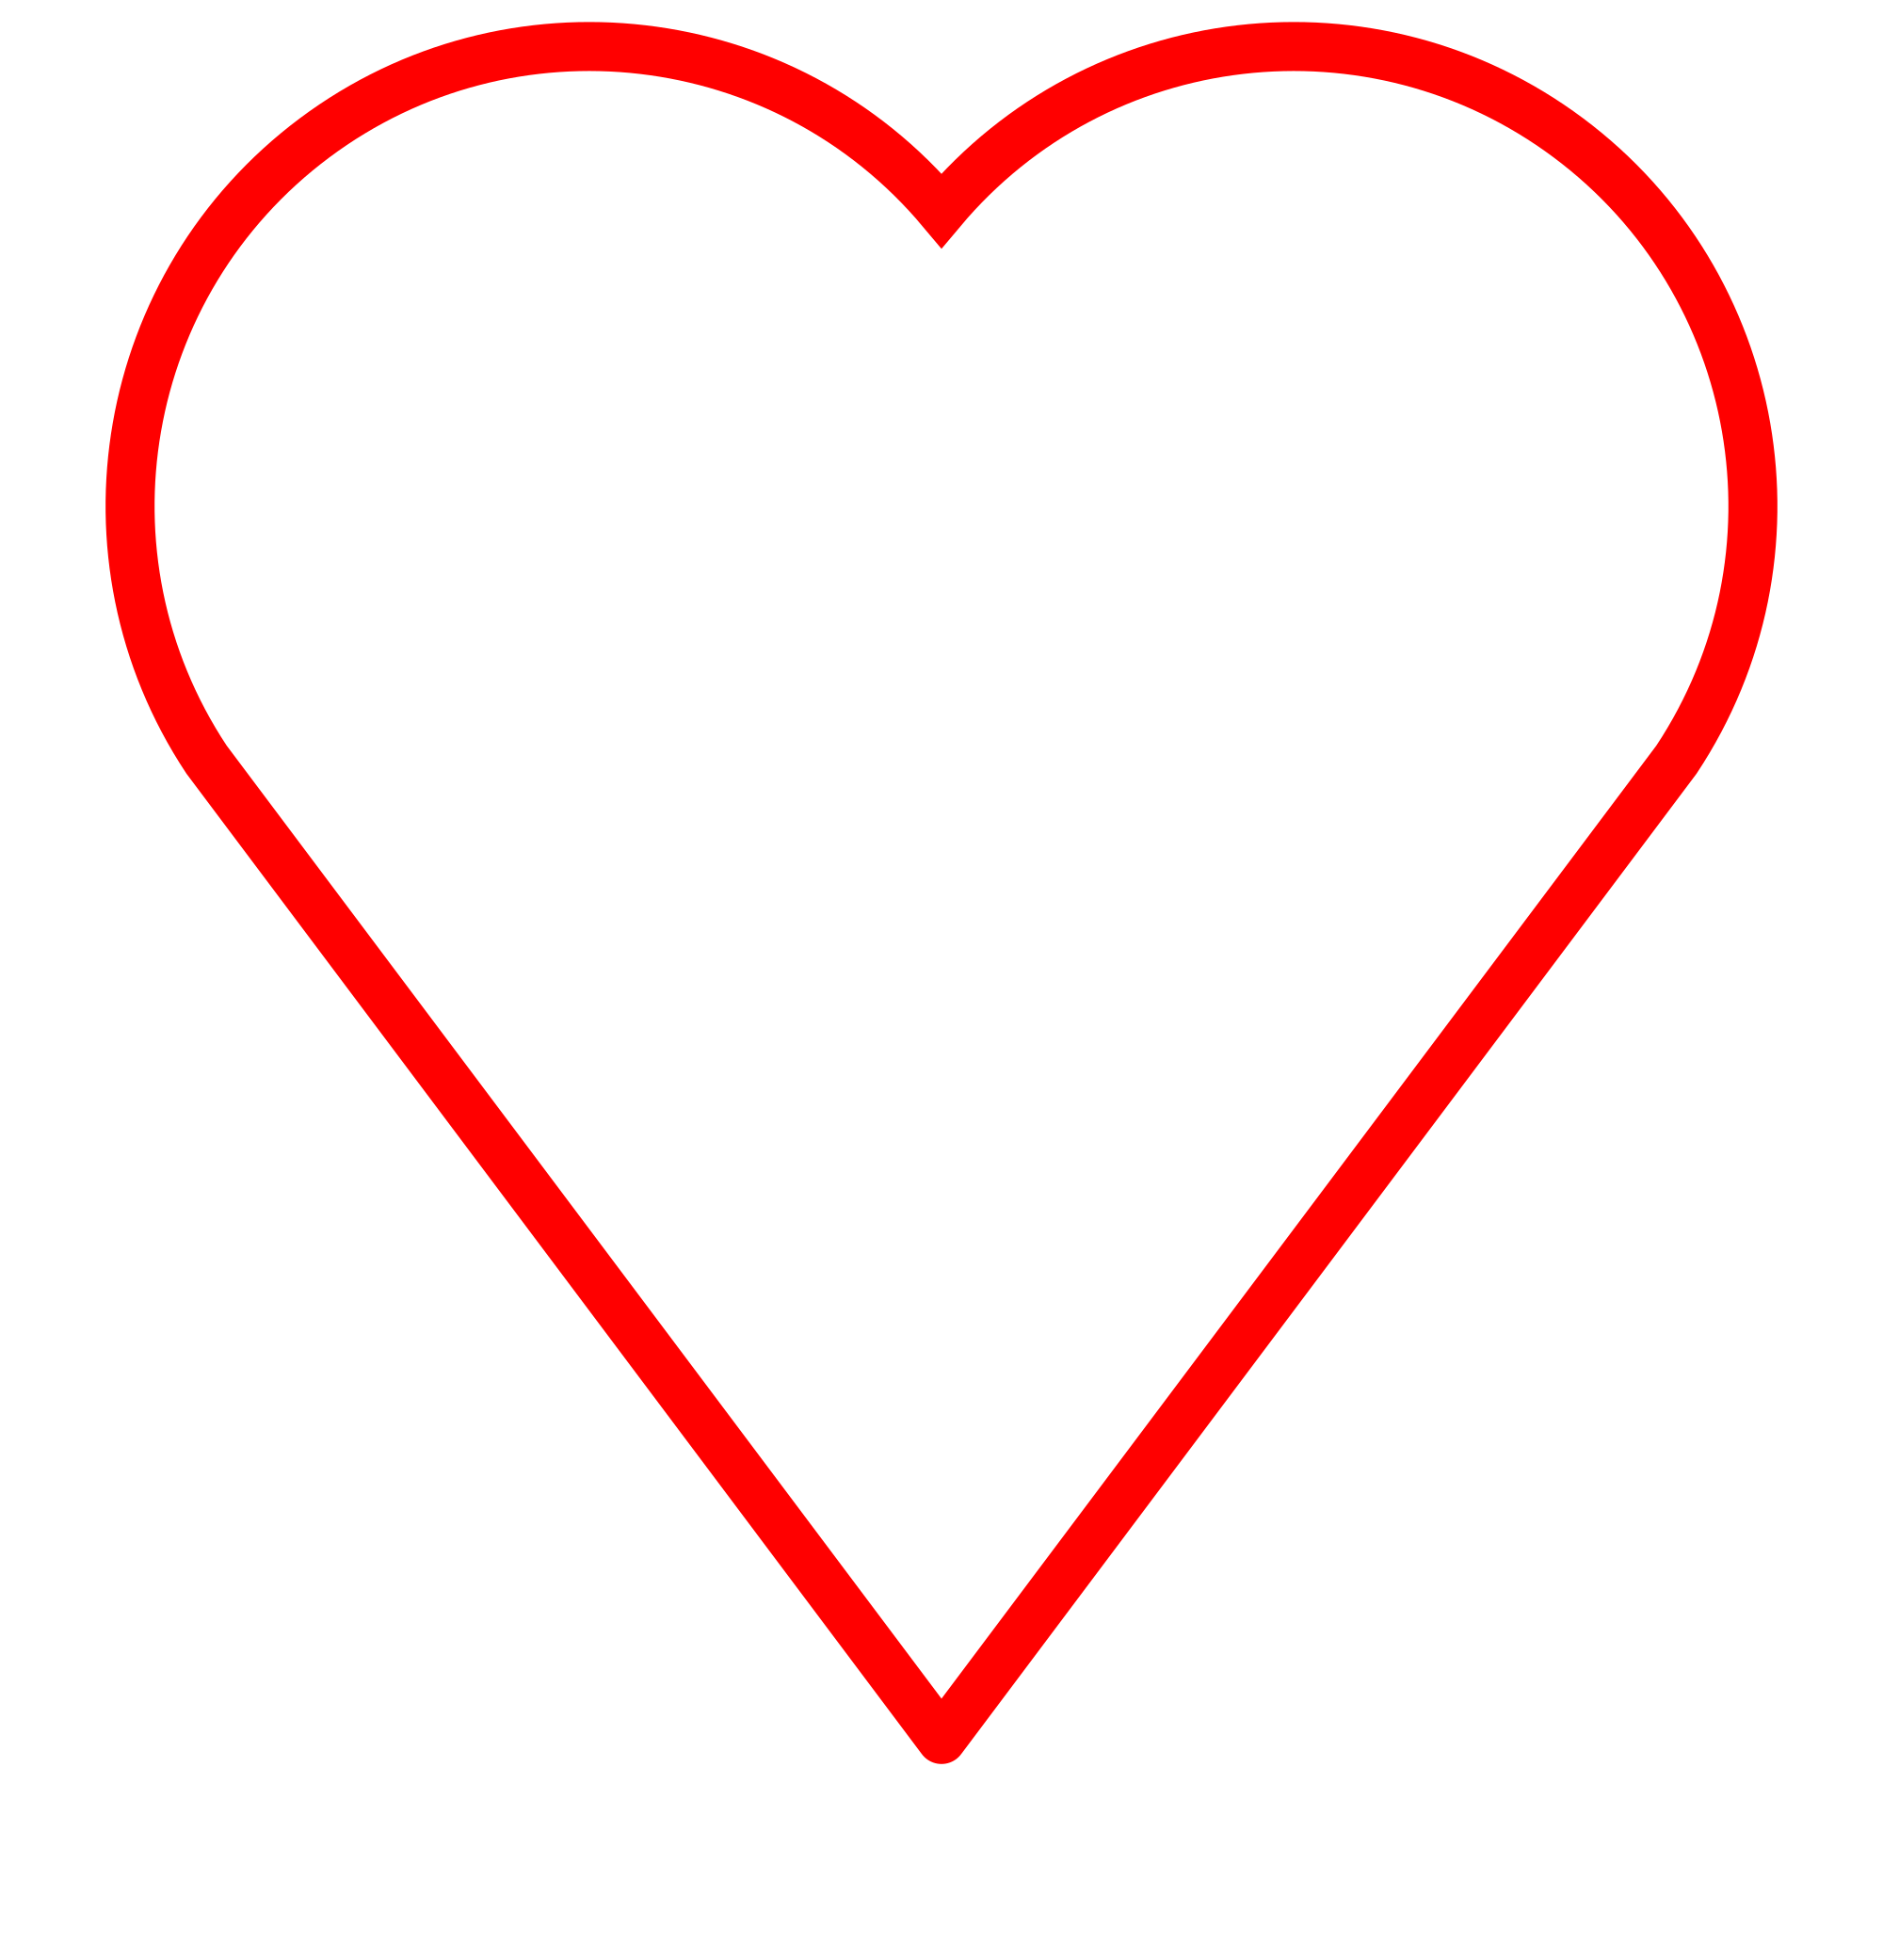 File degrees wikimedia commons. And svg heart clipart transparent library